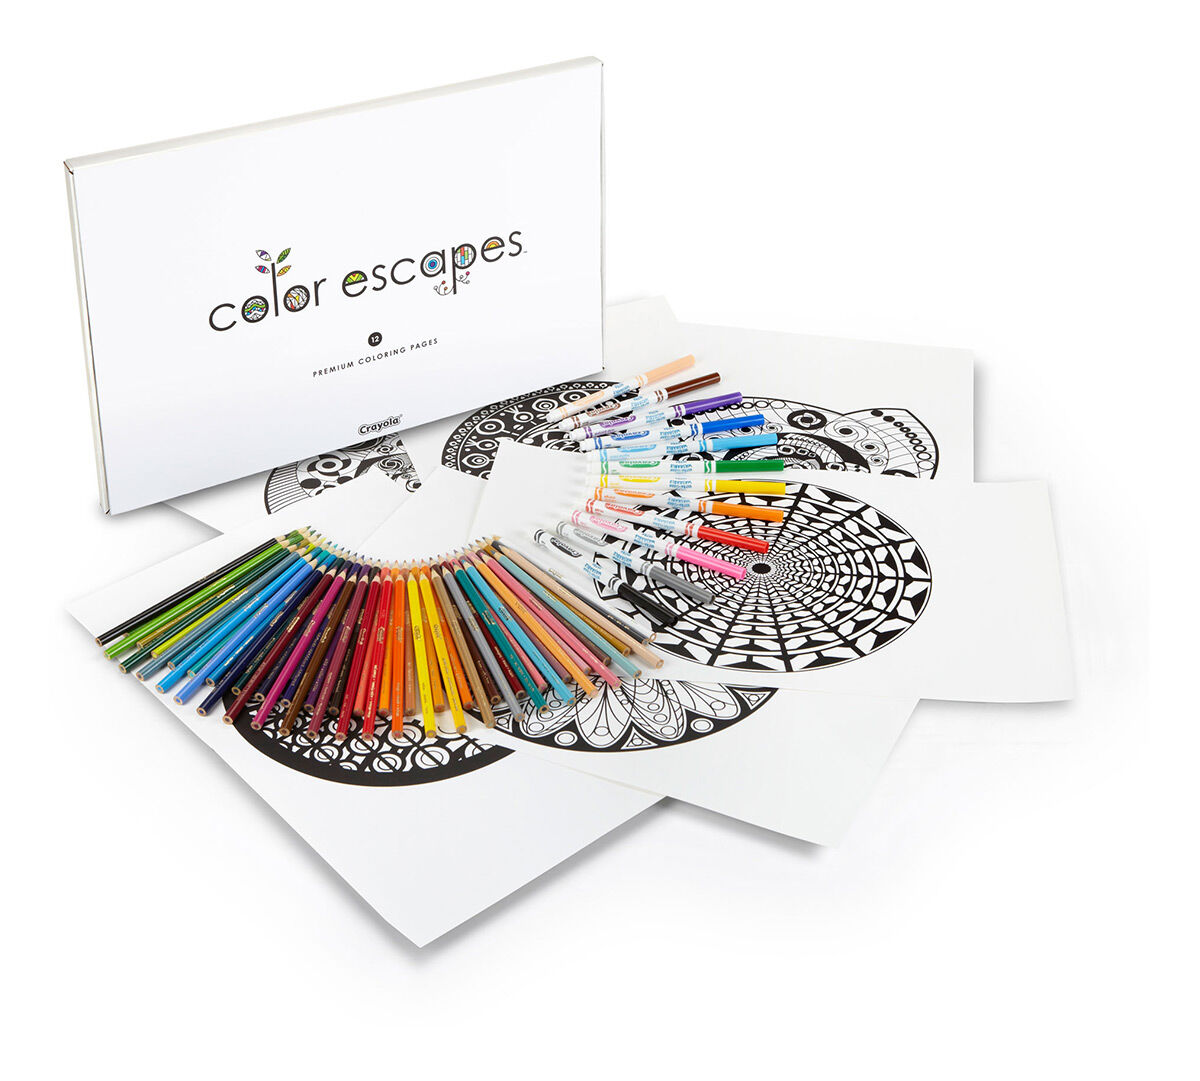 Color Escapes Adult Coloring Kit, Kaleidoscopes - Crayola 14.5.0.8